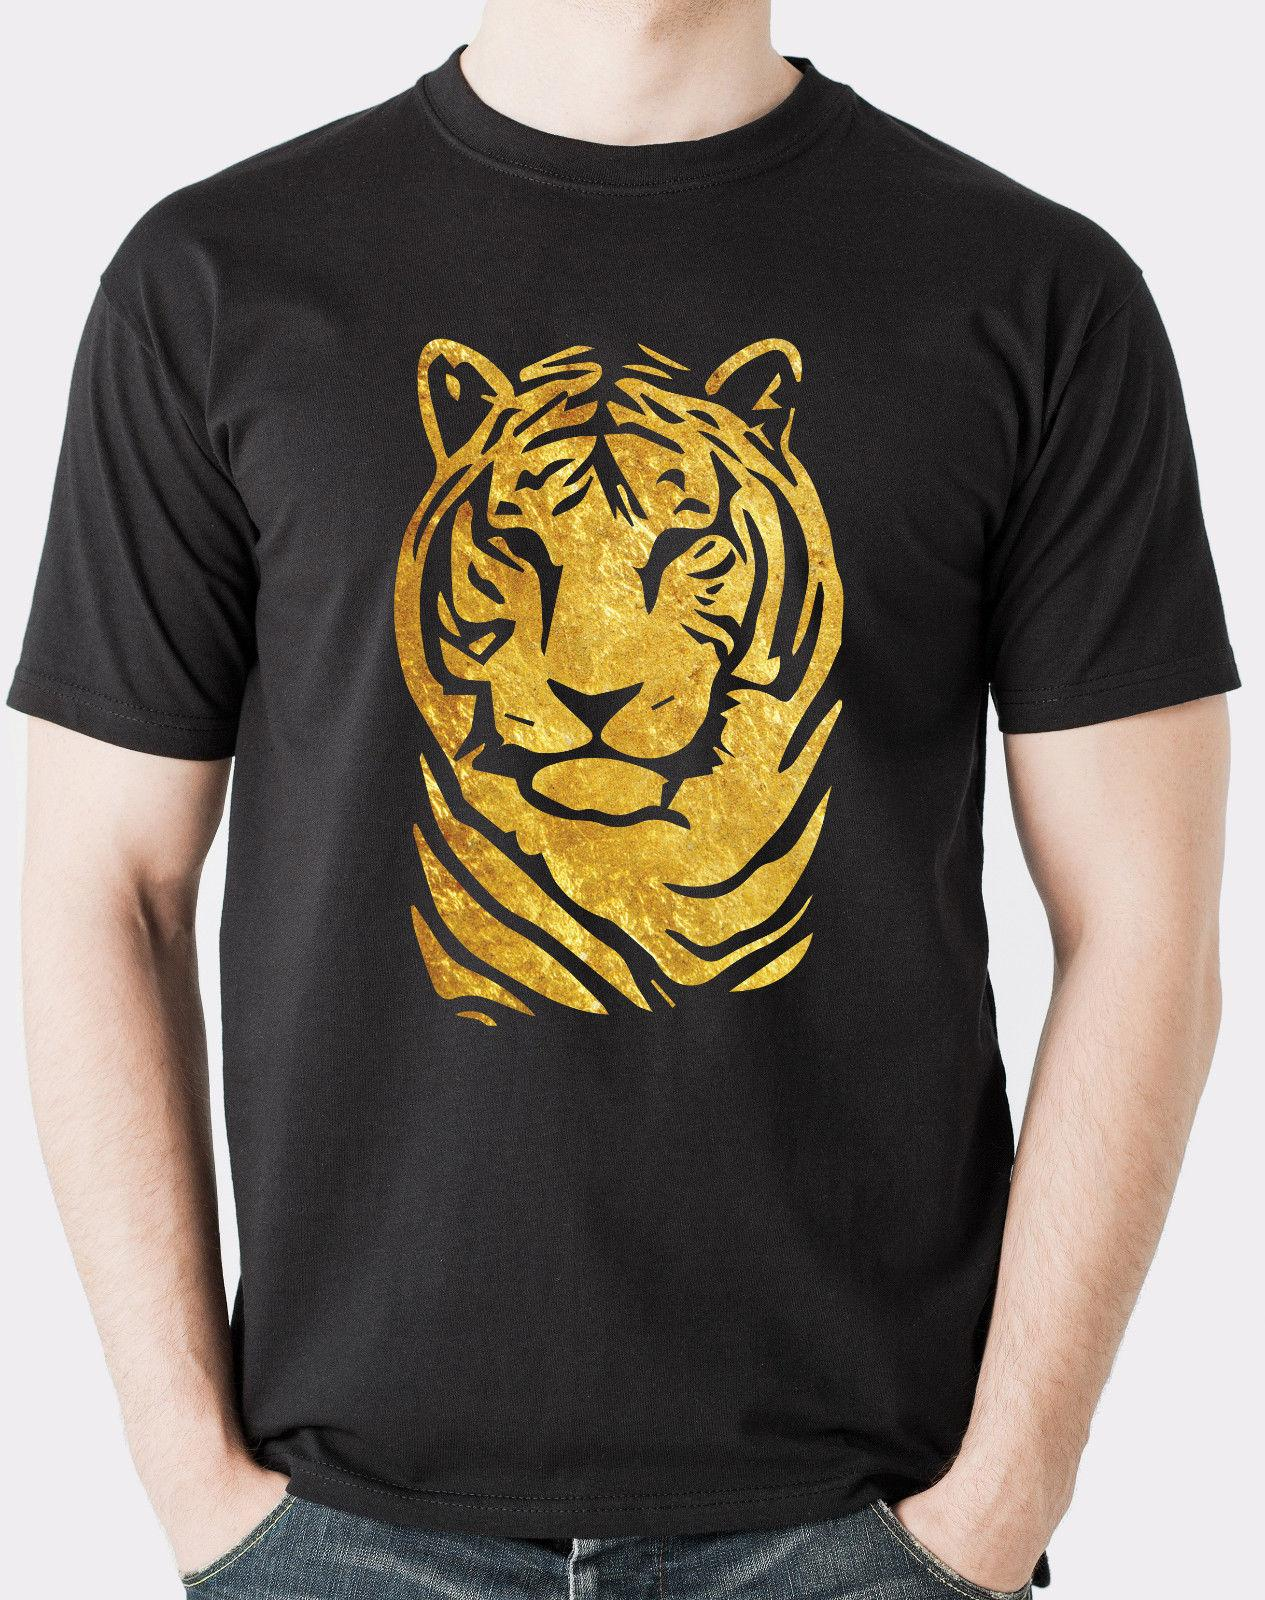 Gold Foil Tiger Design On A Loose Fit T Shirt Mens Tshirt Funny Free Shipping Unisex Casual